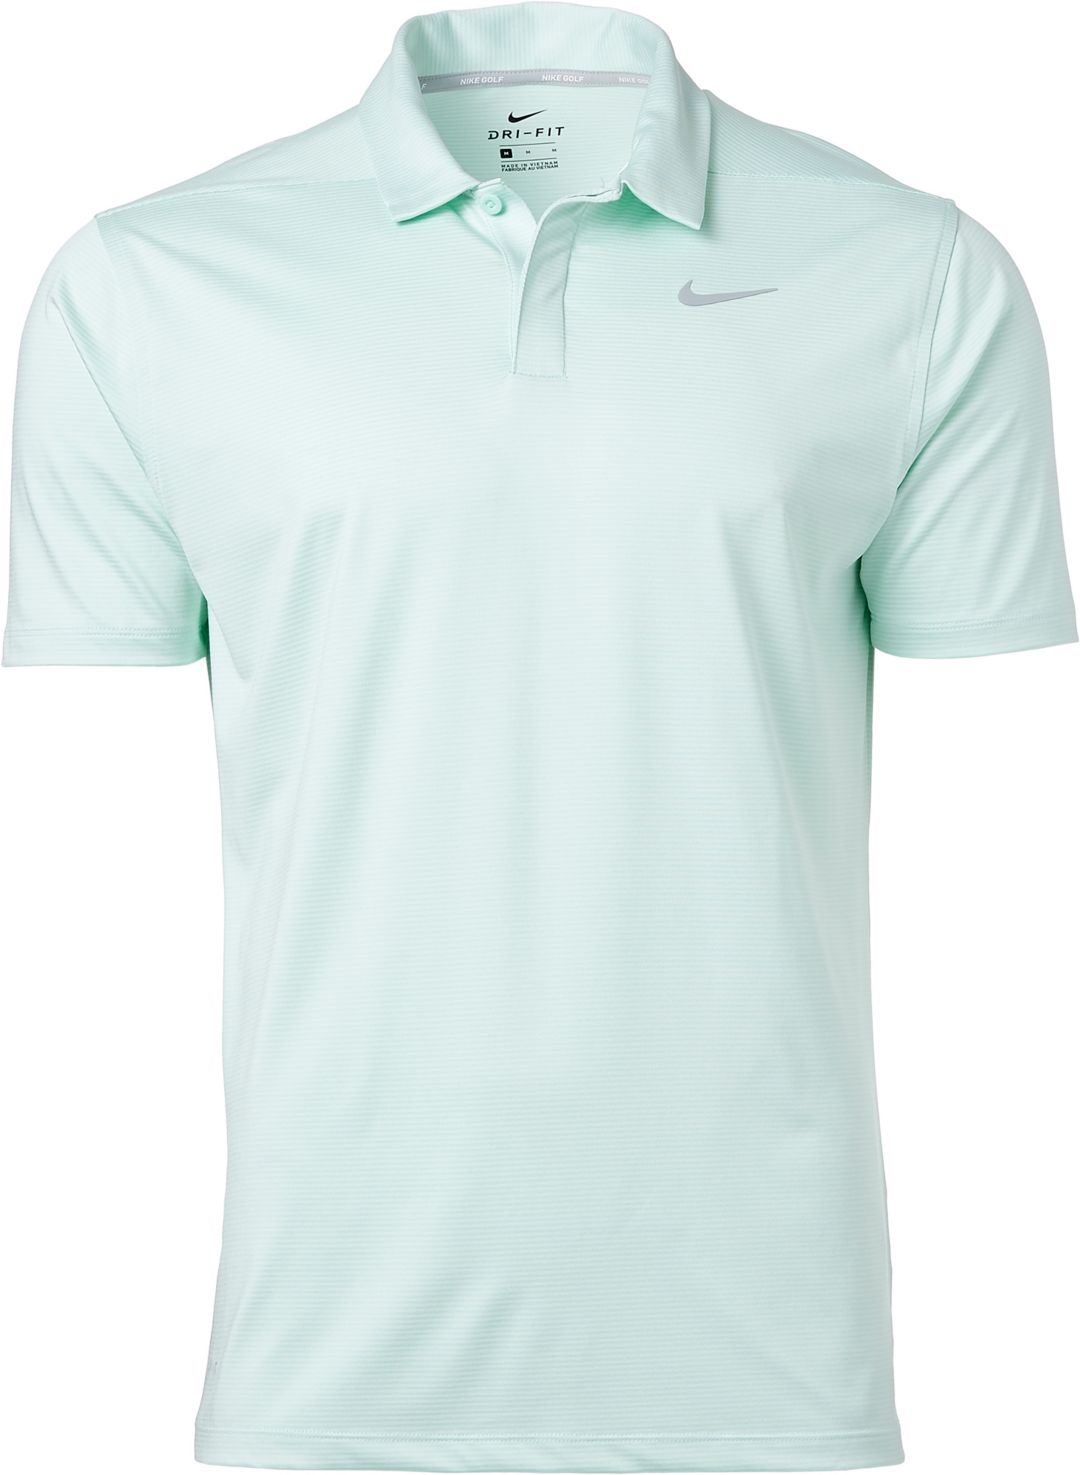 b2e5a64e06 Nike Men's Control Stripe Dry Golf Polo | DICK'S Sporting Goods